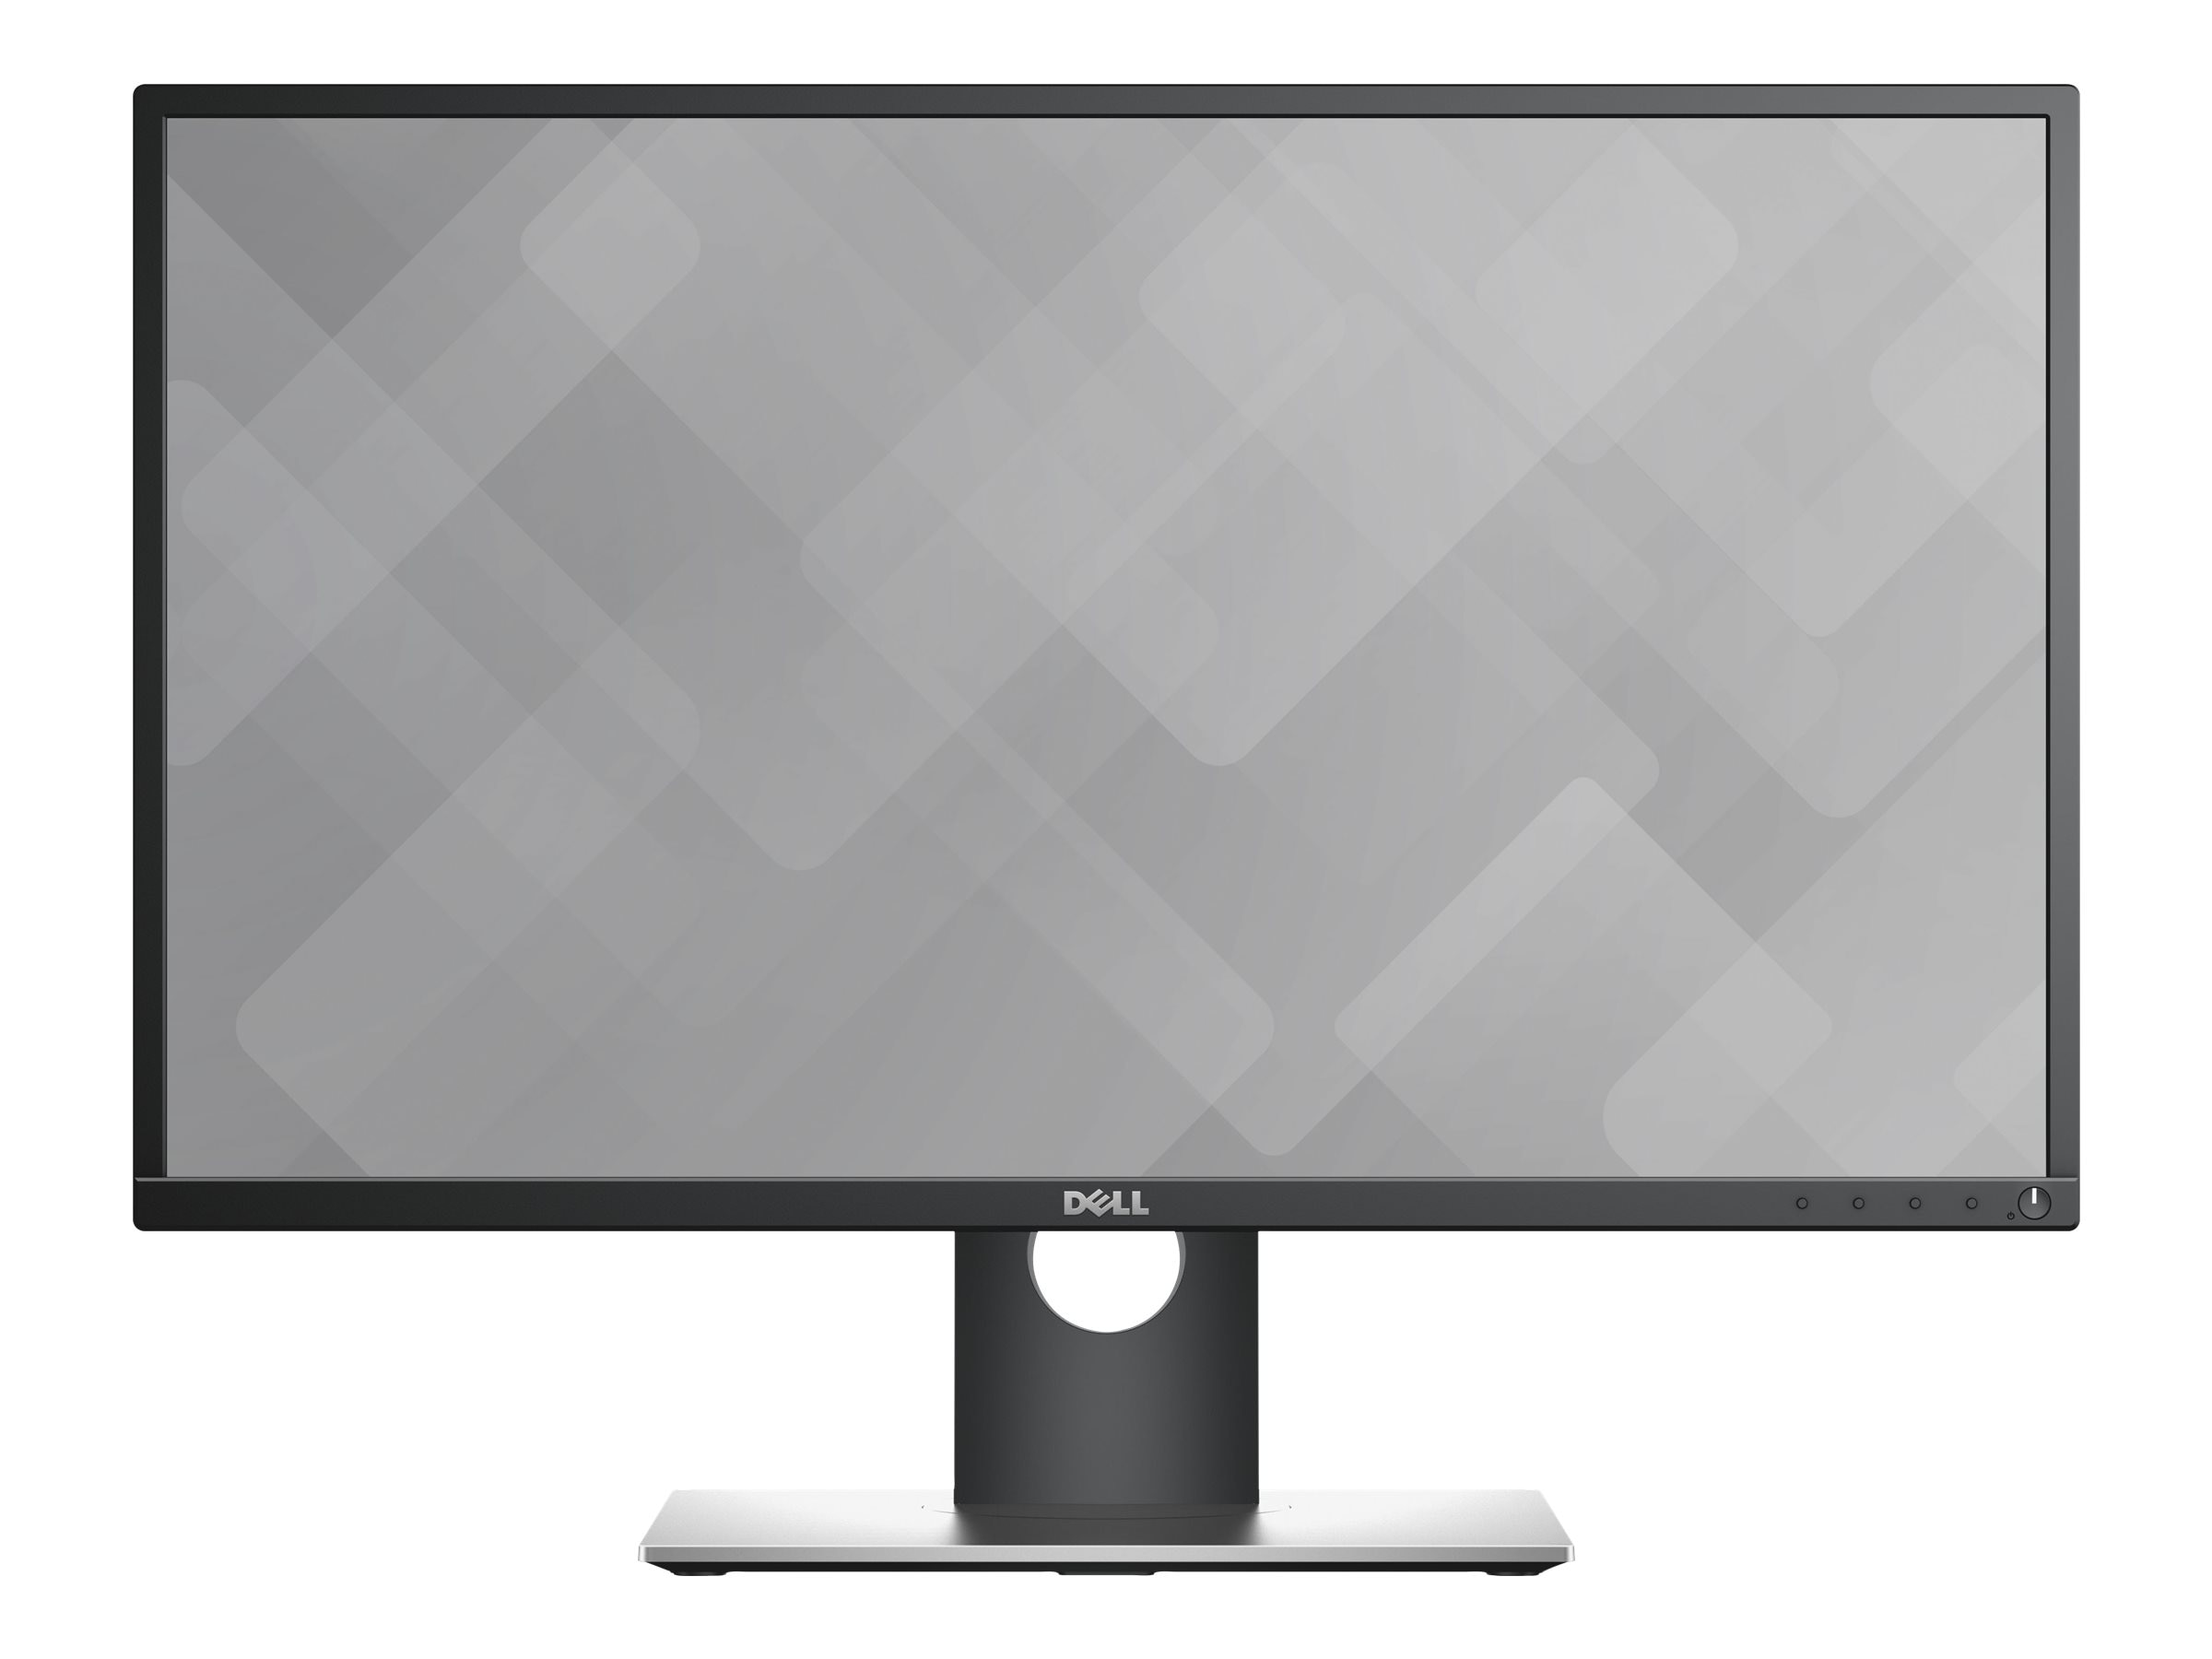 Dell 27 P2717H Full HD LED-LCD Monitor, Black